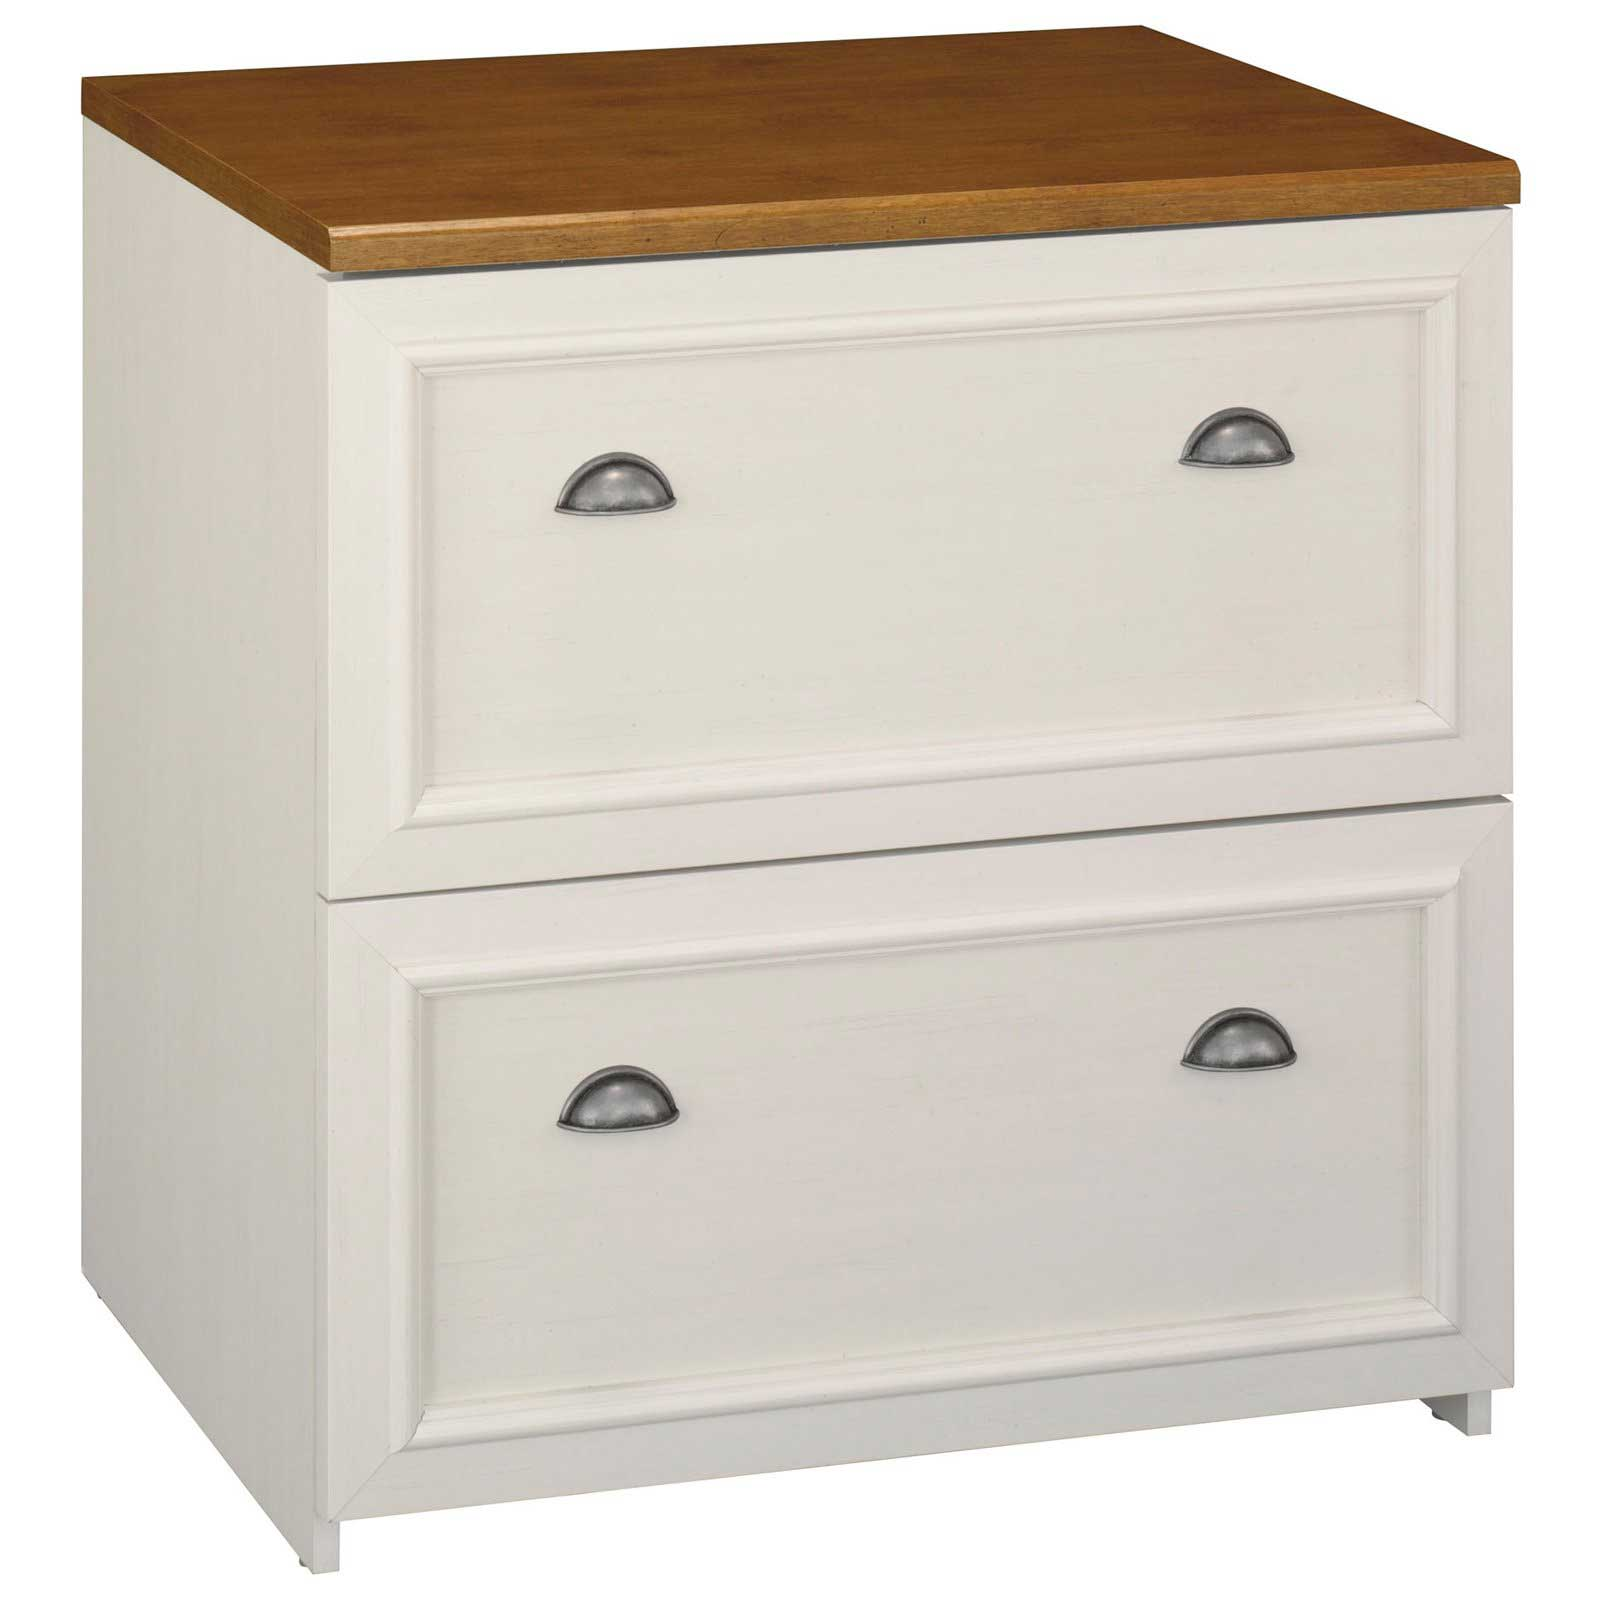 Bush Fairview White Antique File Cabinets Two Drawers